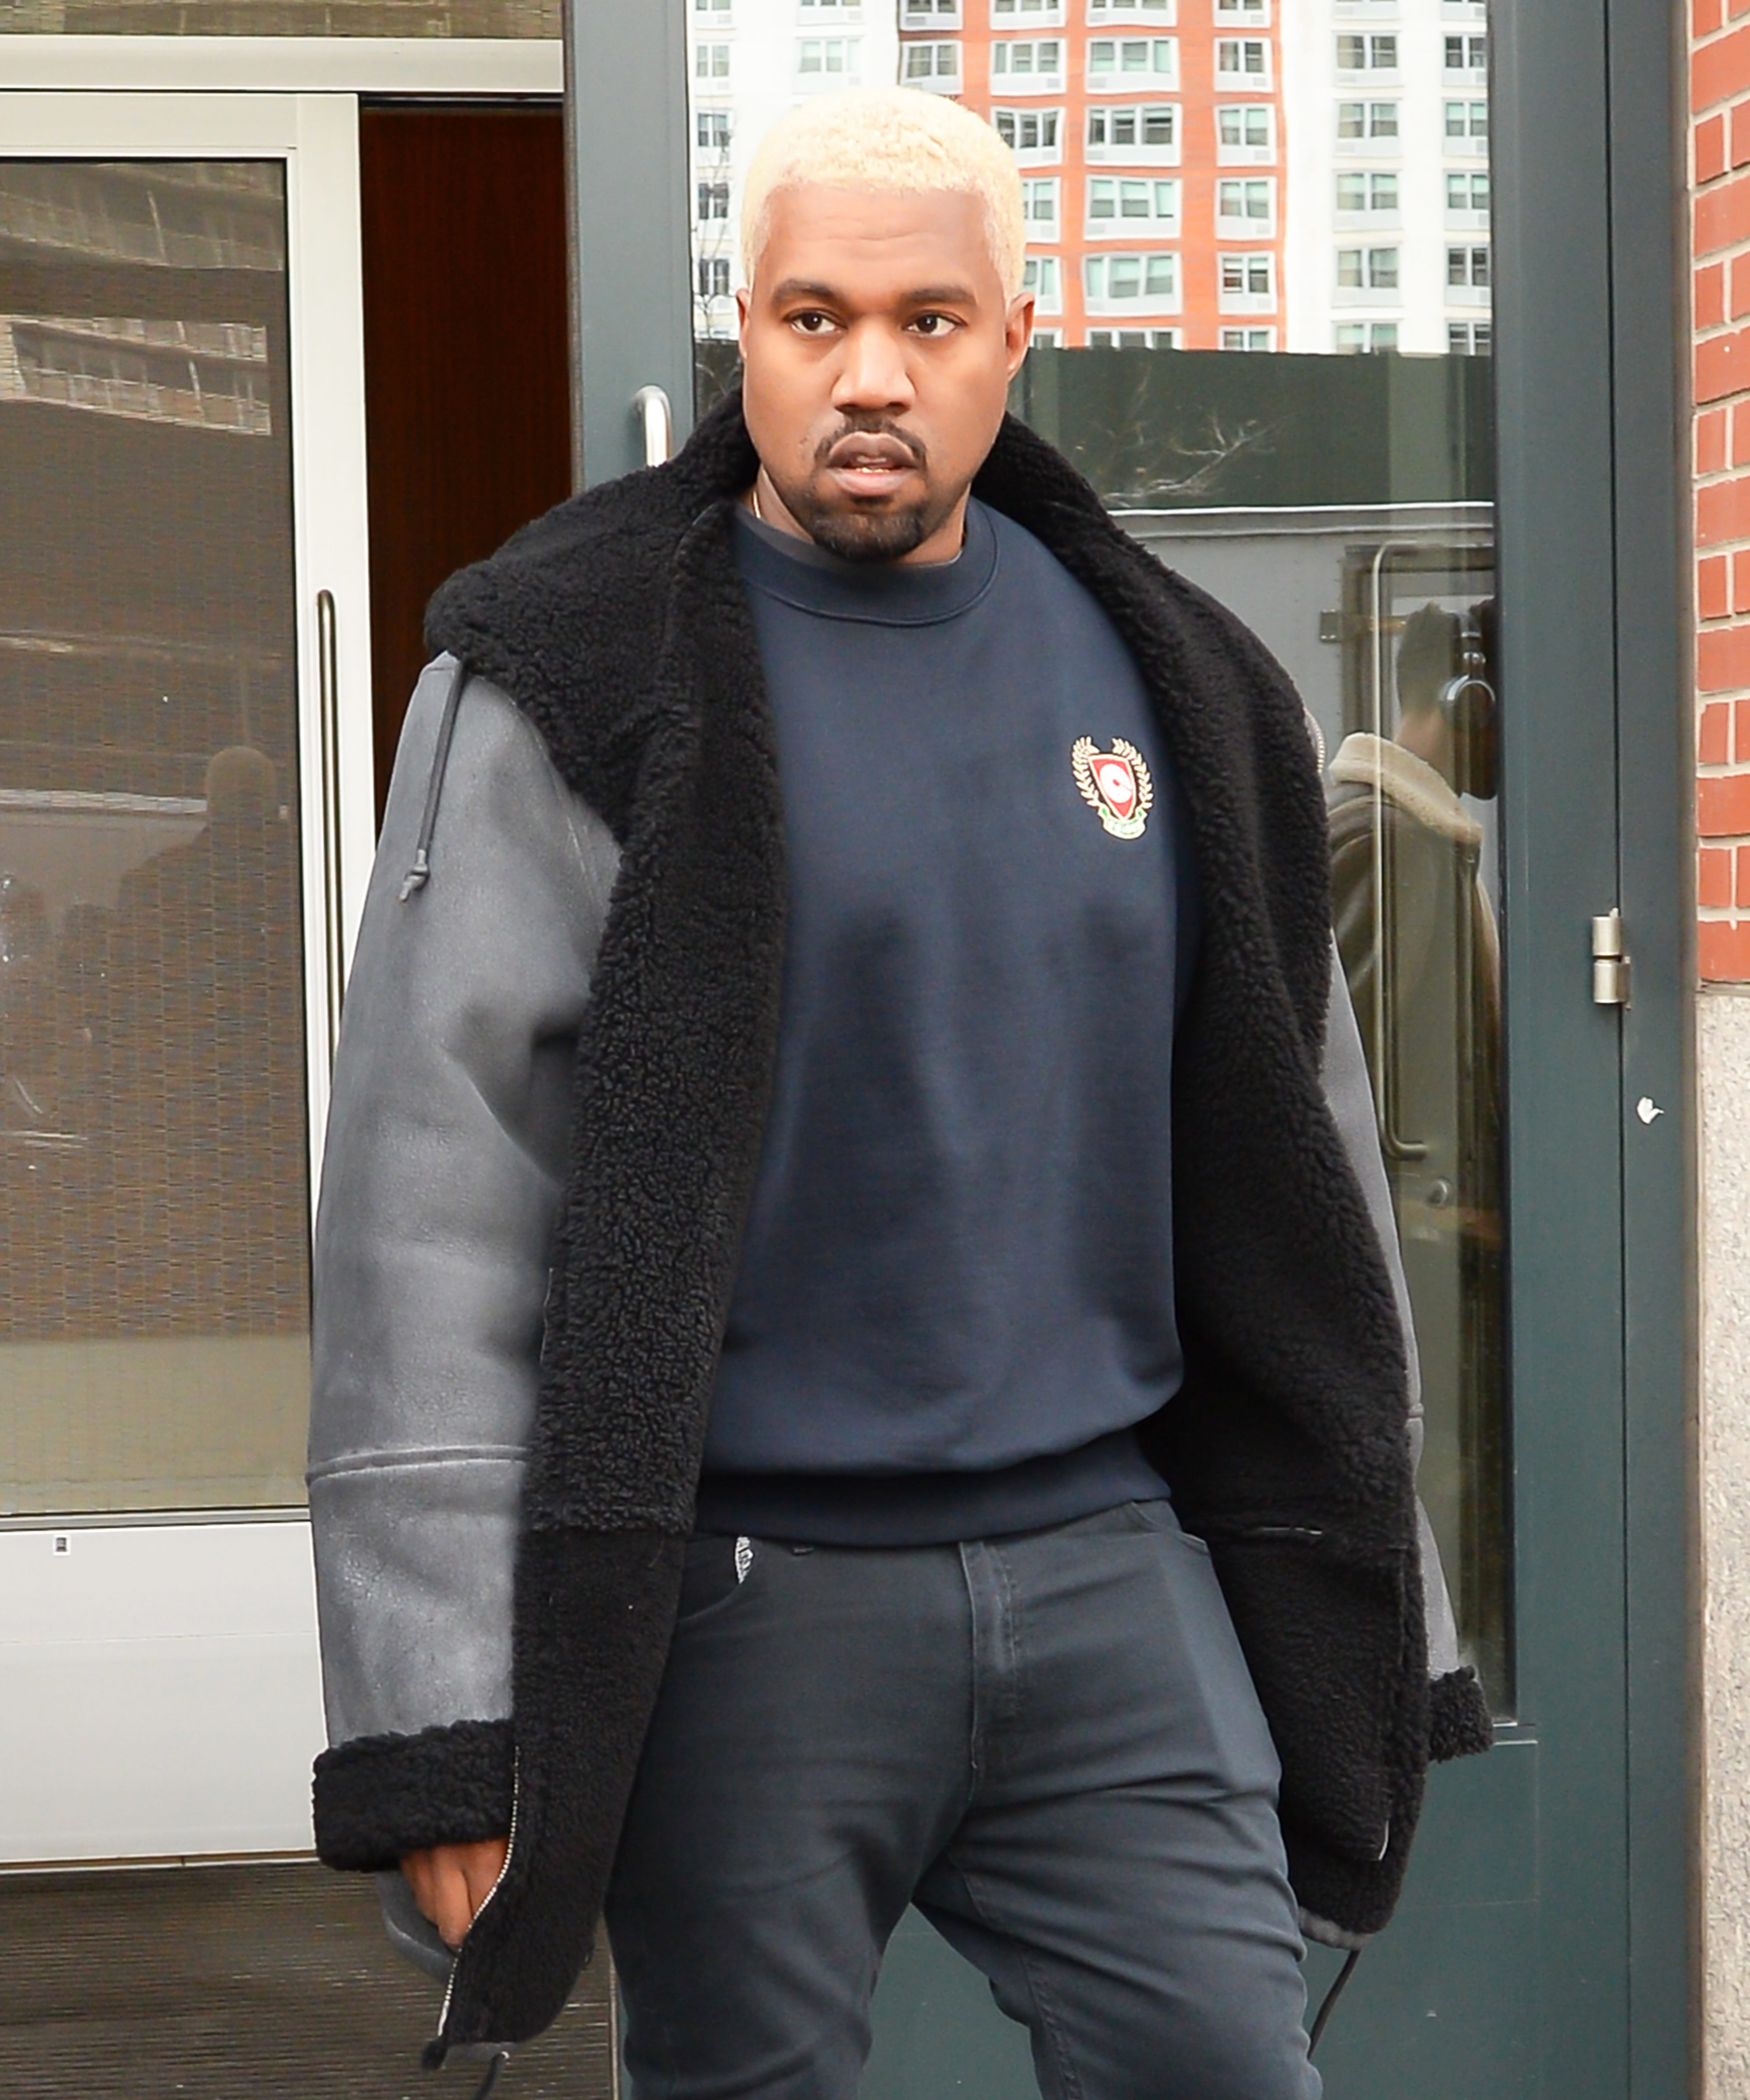 How We Lost The Kanye We Love